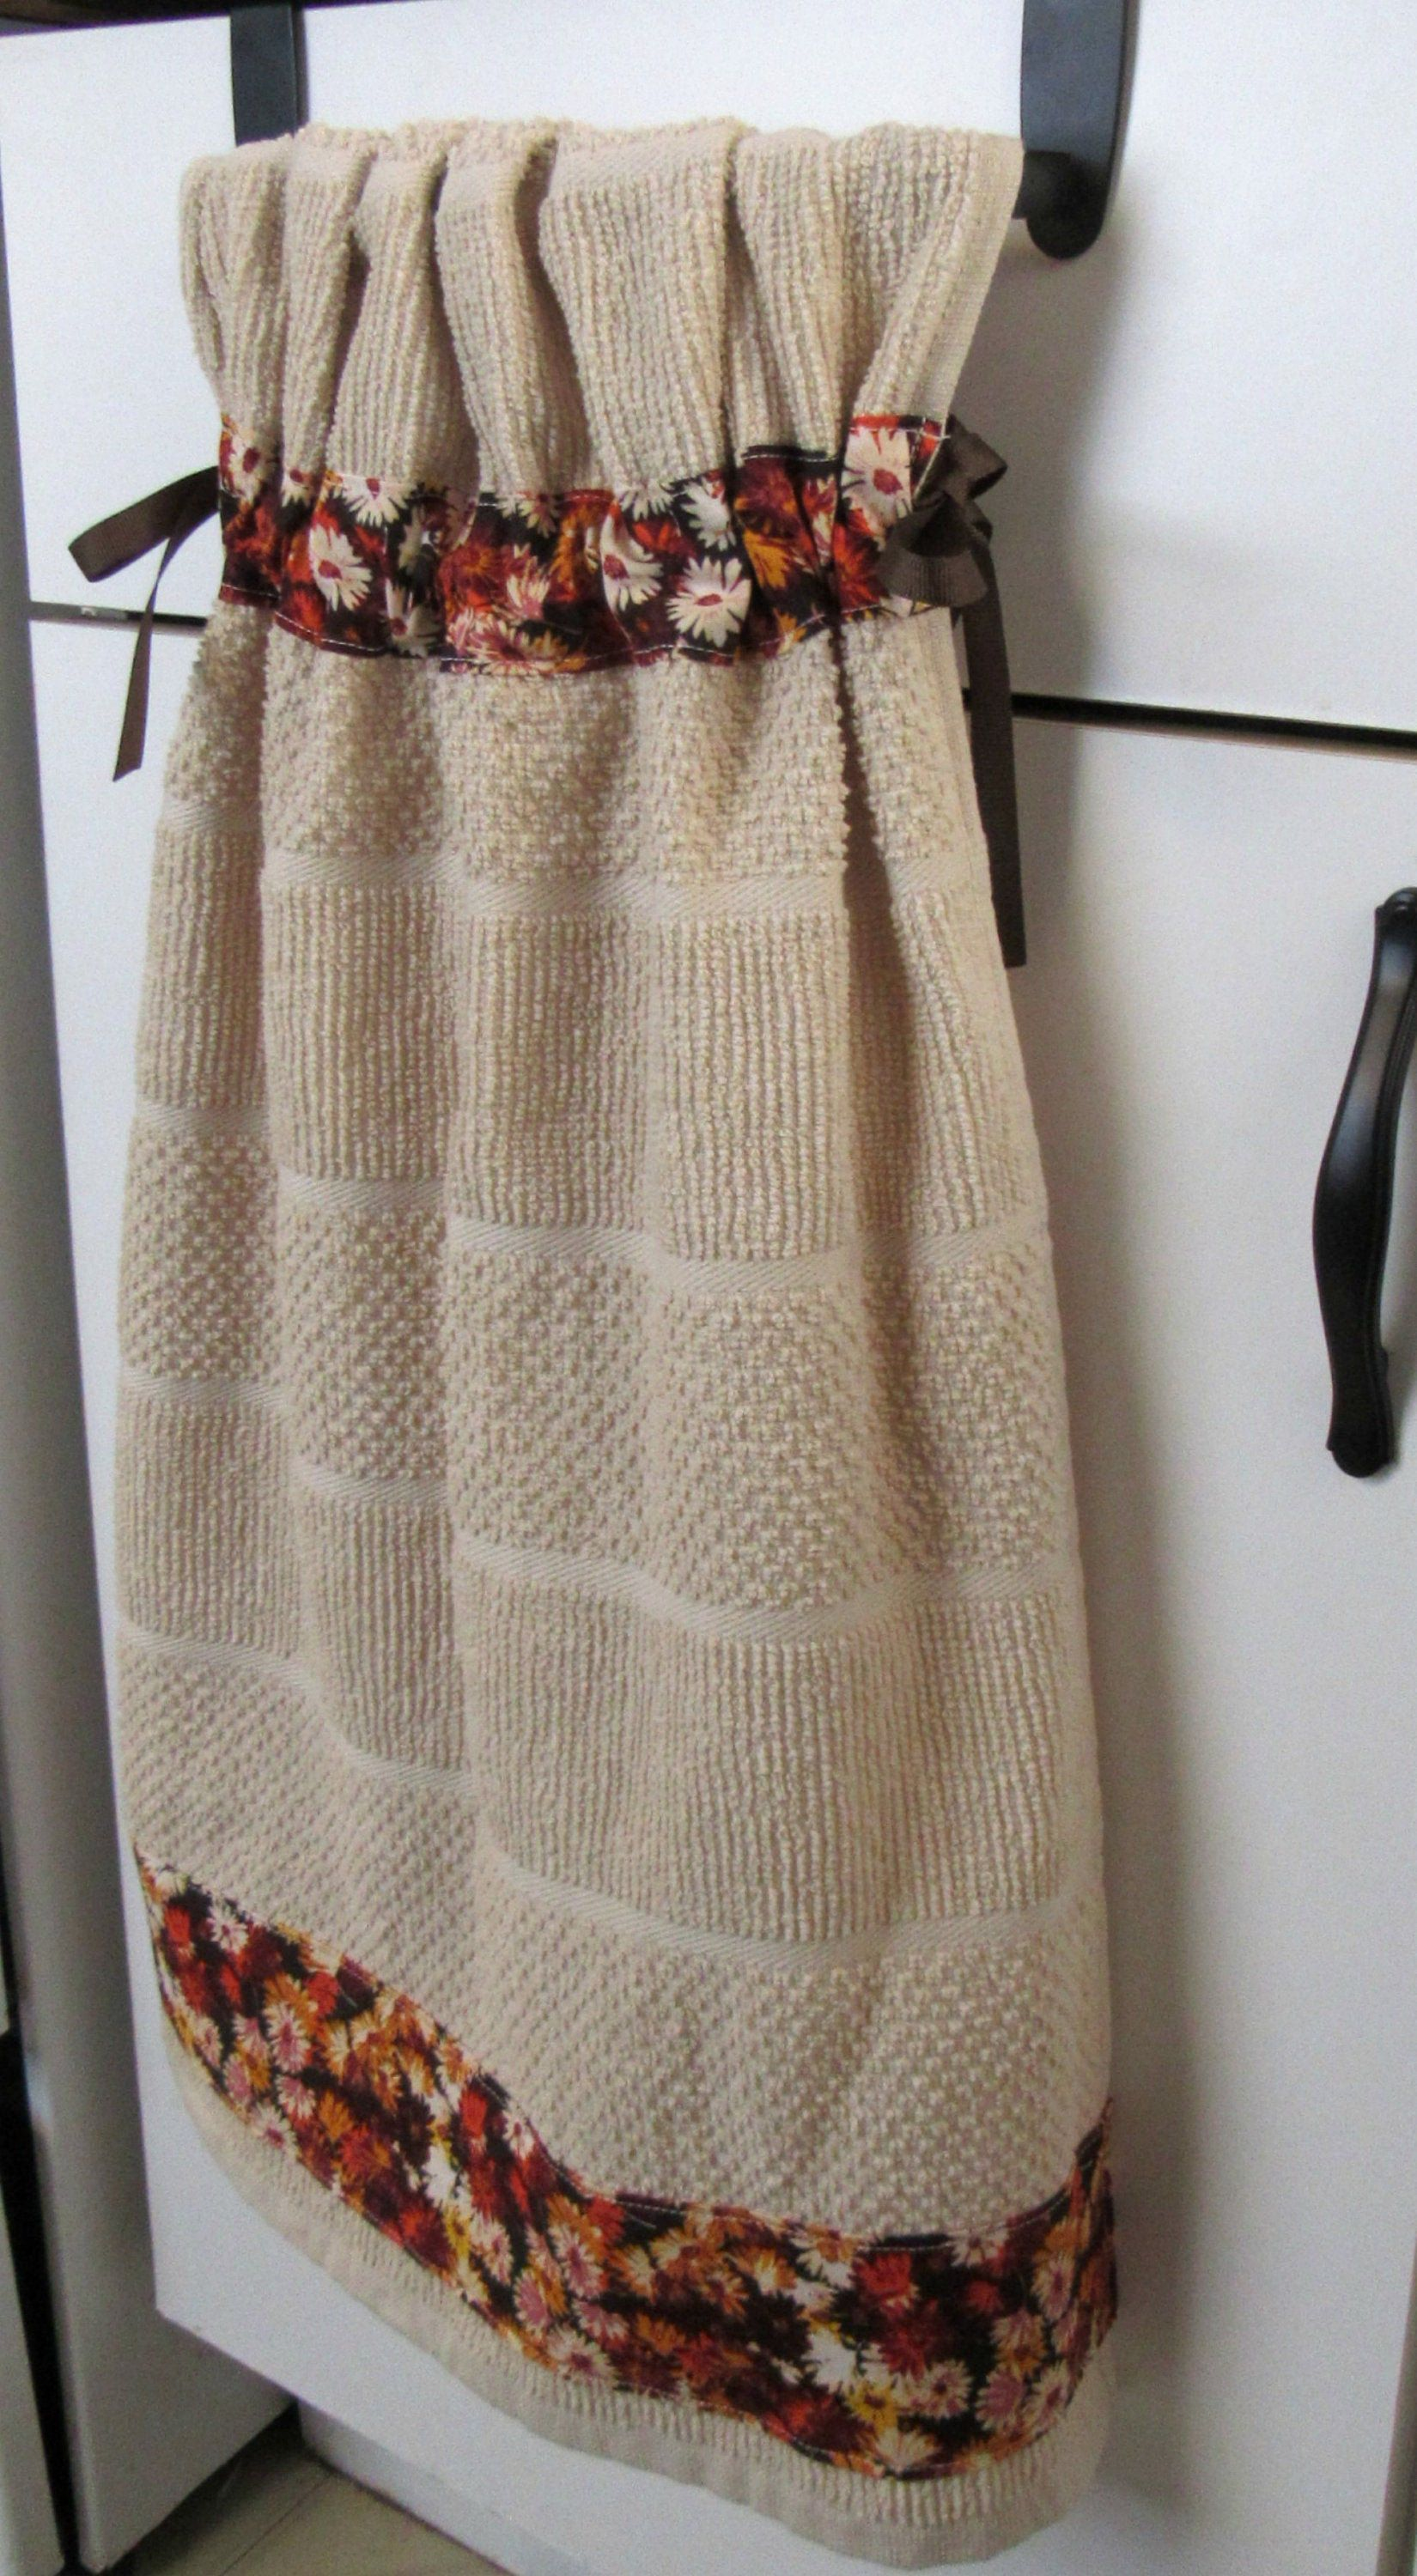 Tie Top Towels Cream Cotton Kitchen Towel Accented With Fall Mini